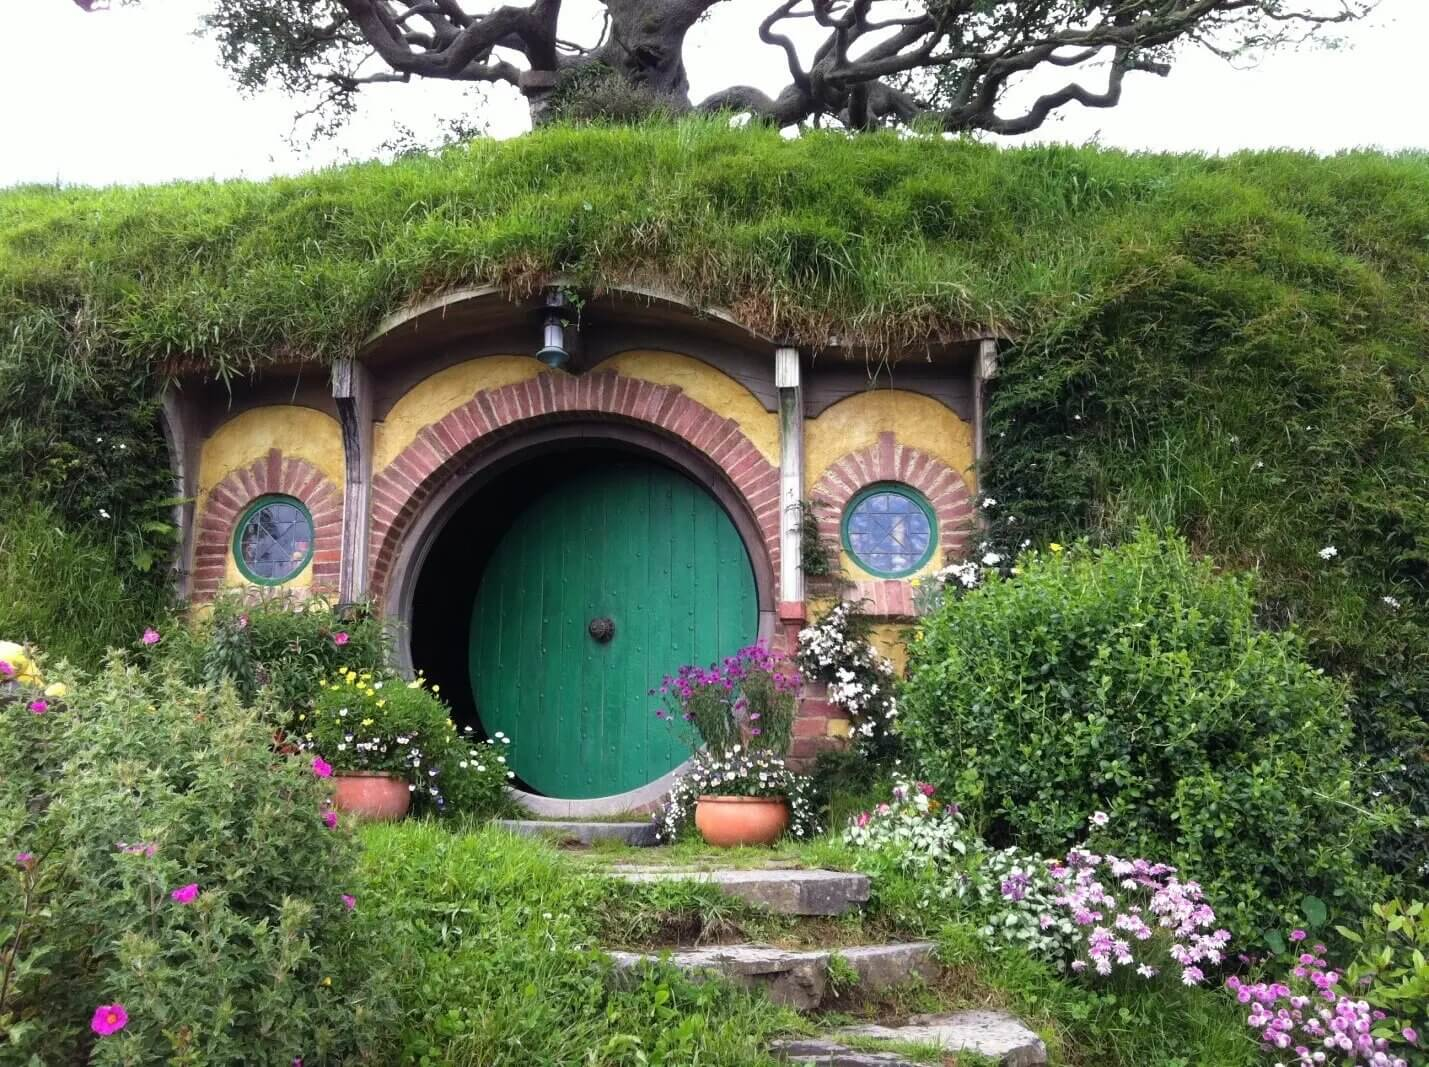 Walkthrough Shire at Hobbiton